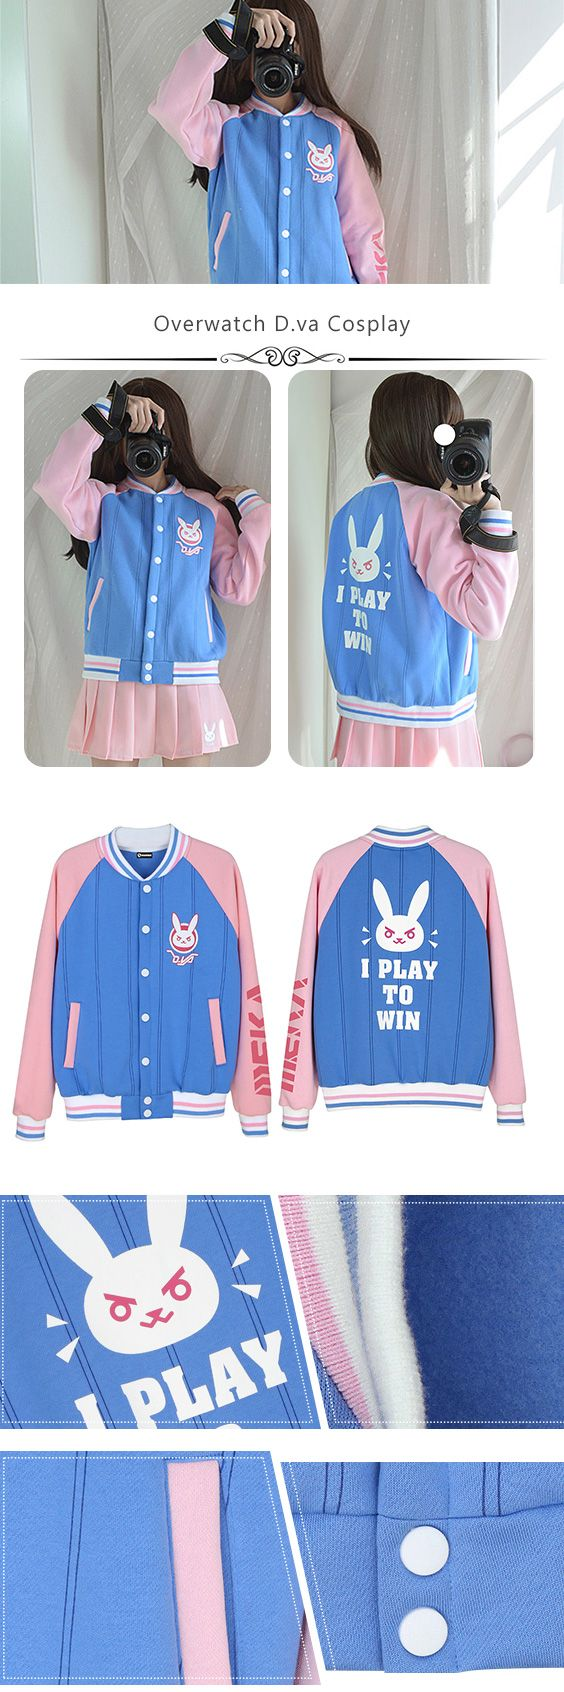 More about Overwatch D.va Cosplay Baseball Jacket sells at Miccostumes #cosplay #miccostumes #gamerelatedproducts #Overwatch #Dva #dvaBaseballJacket #overwatchcosplay #dvacosplay